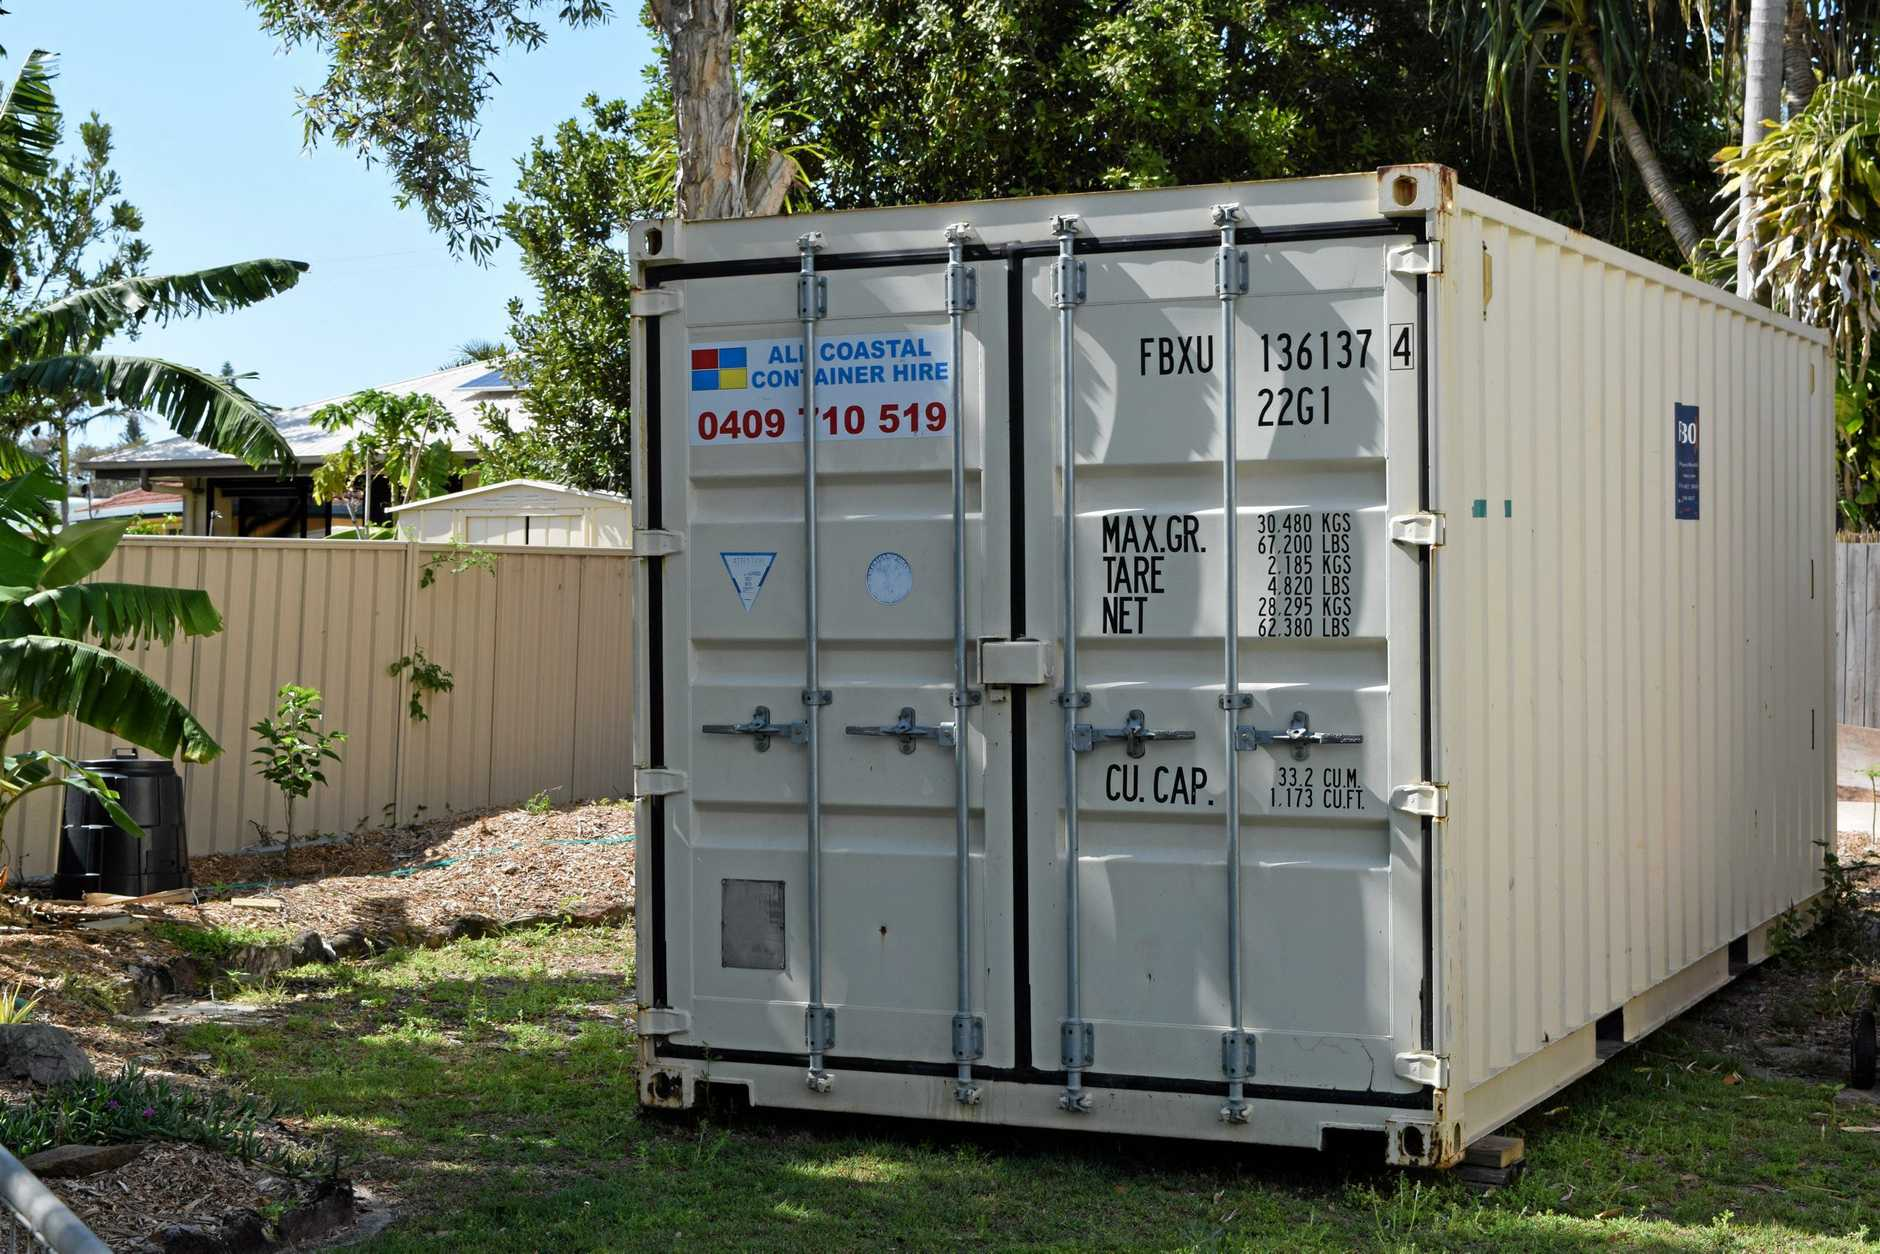 File image of a shipping container.